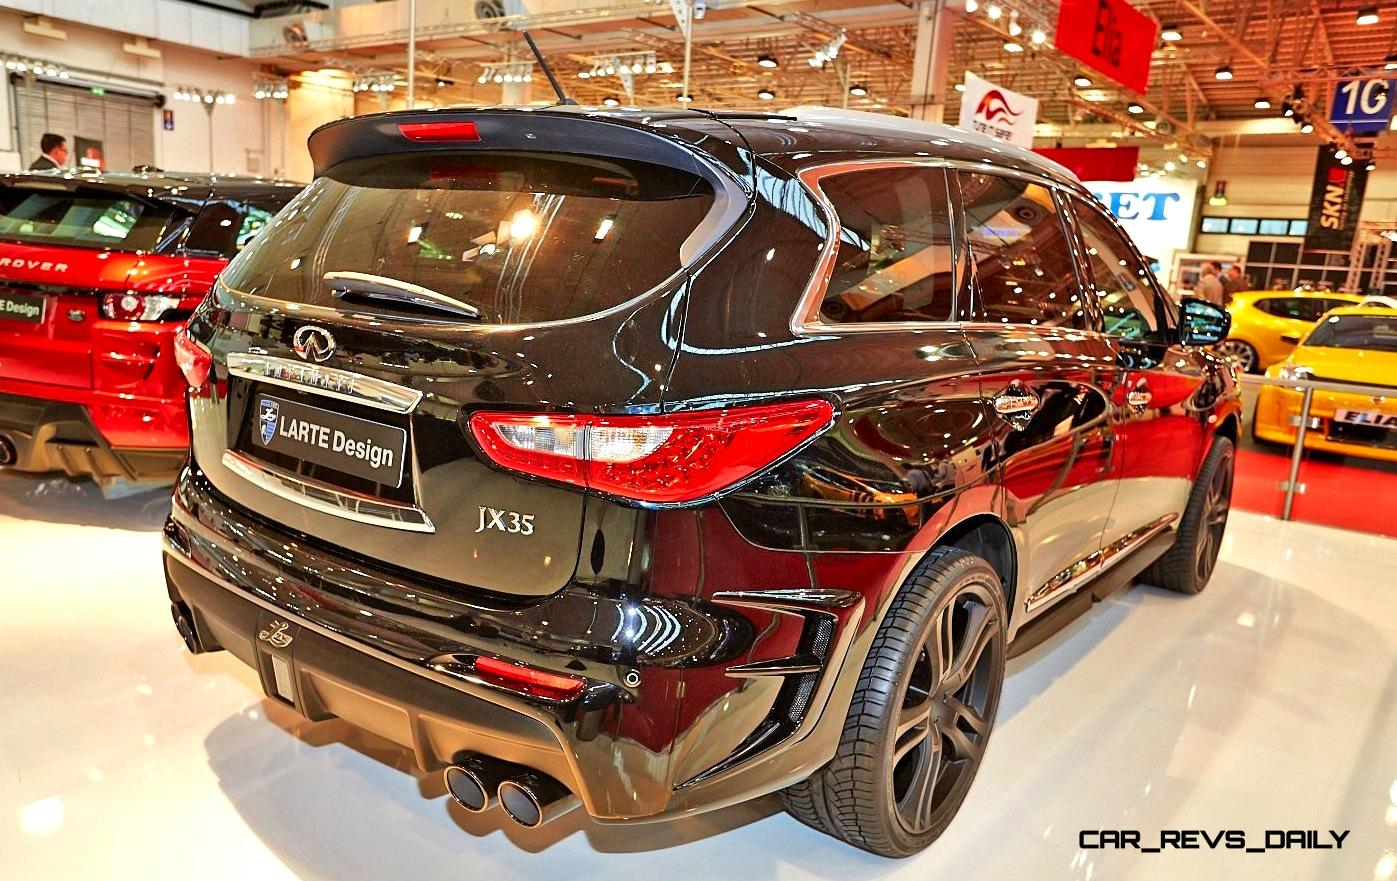 Larte design infiniti qx60 is completely transformed into gorgeous larte design infiniti qx60 24 vanachro Image collections